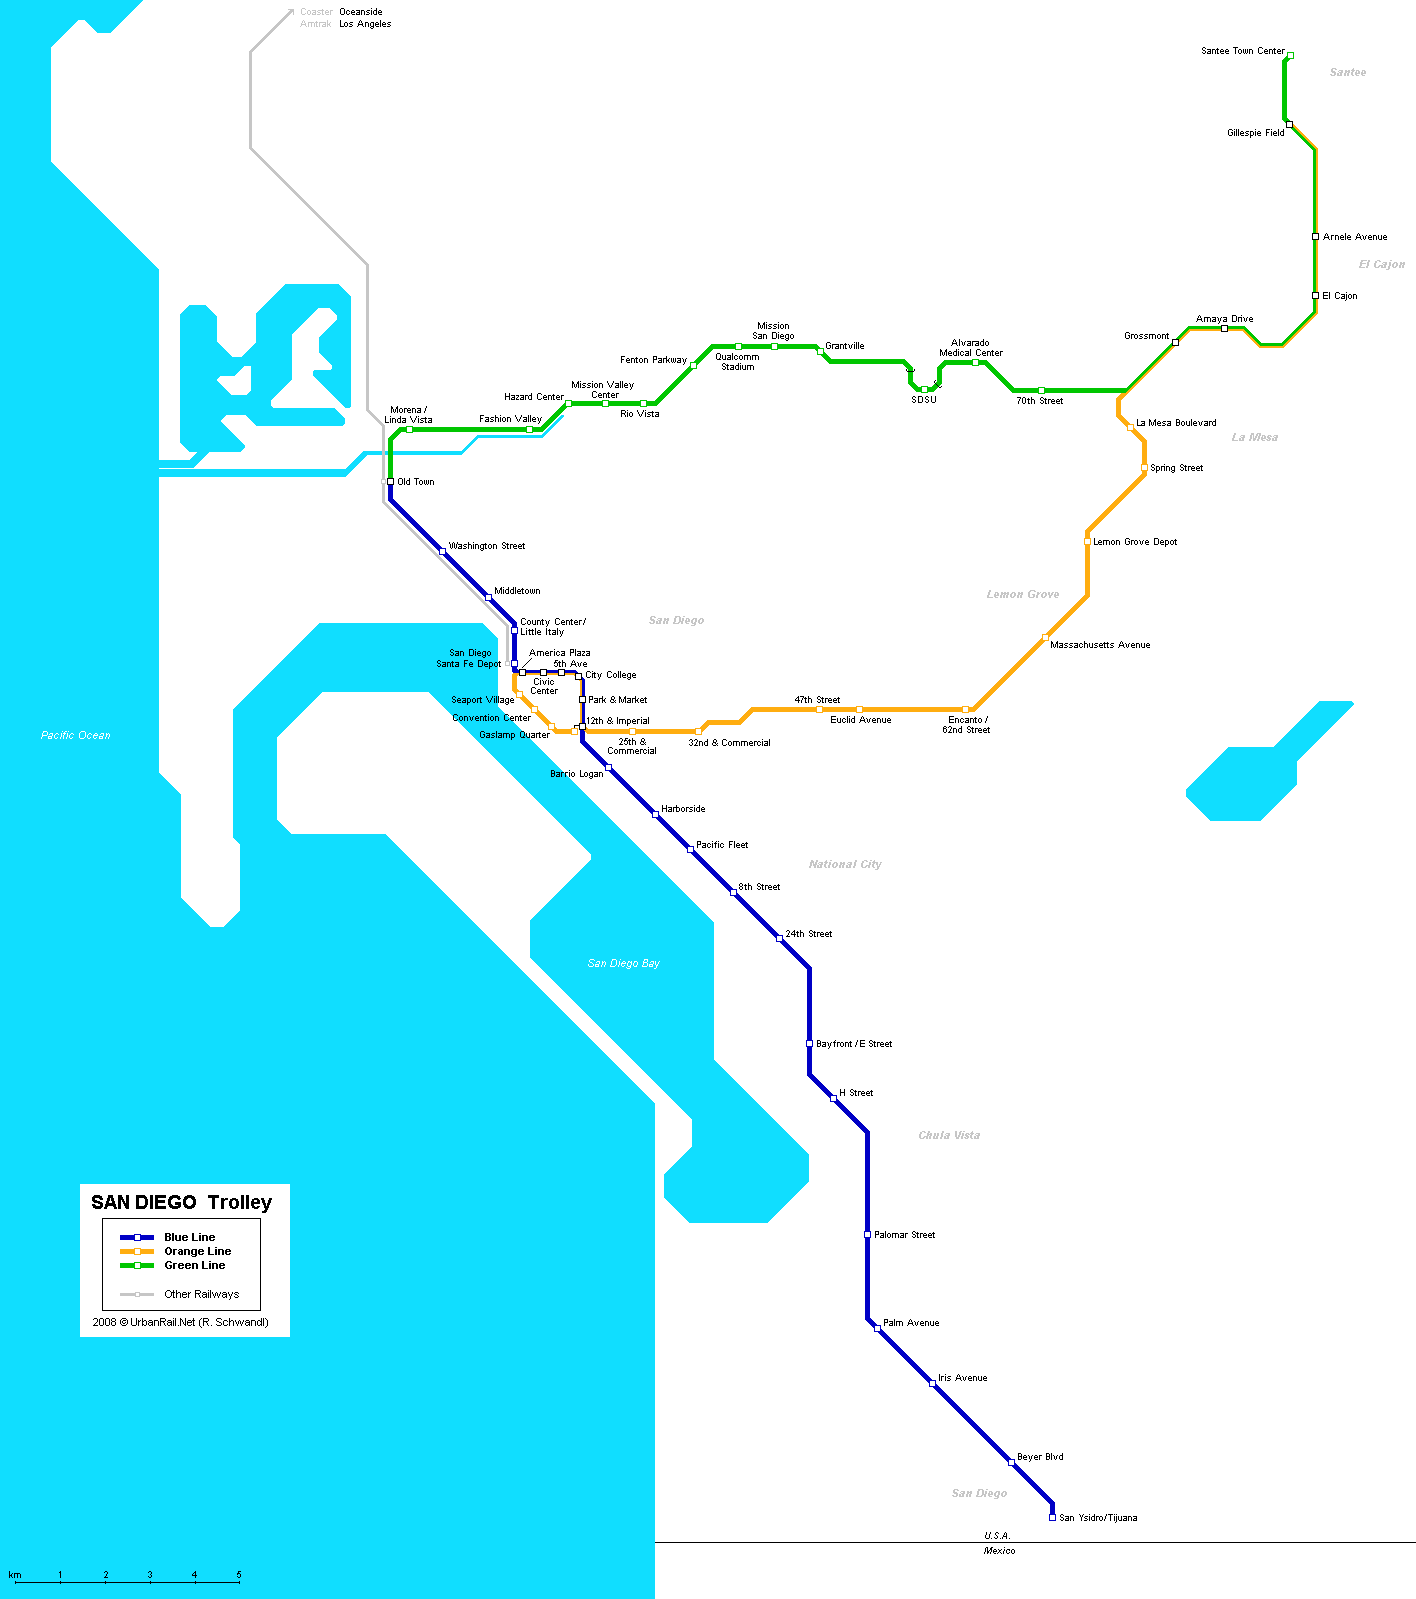 San Jose Subway Map.San Diego Subway Map For Download Metro In San Diego High